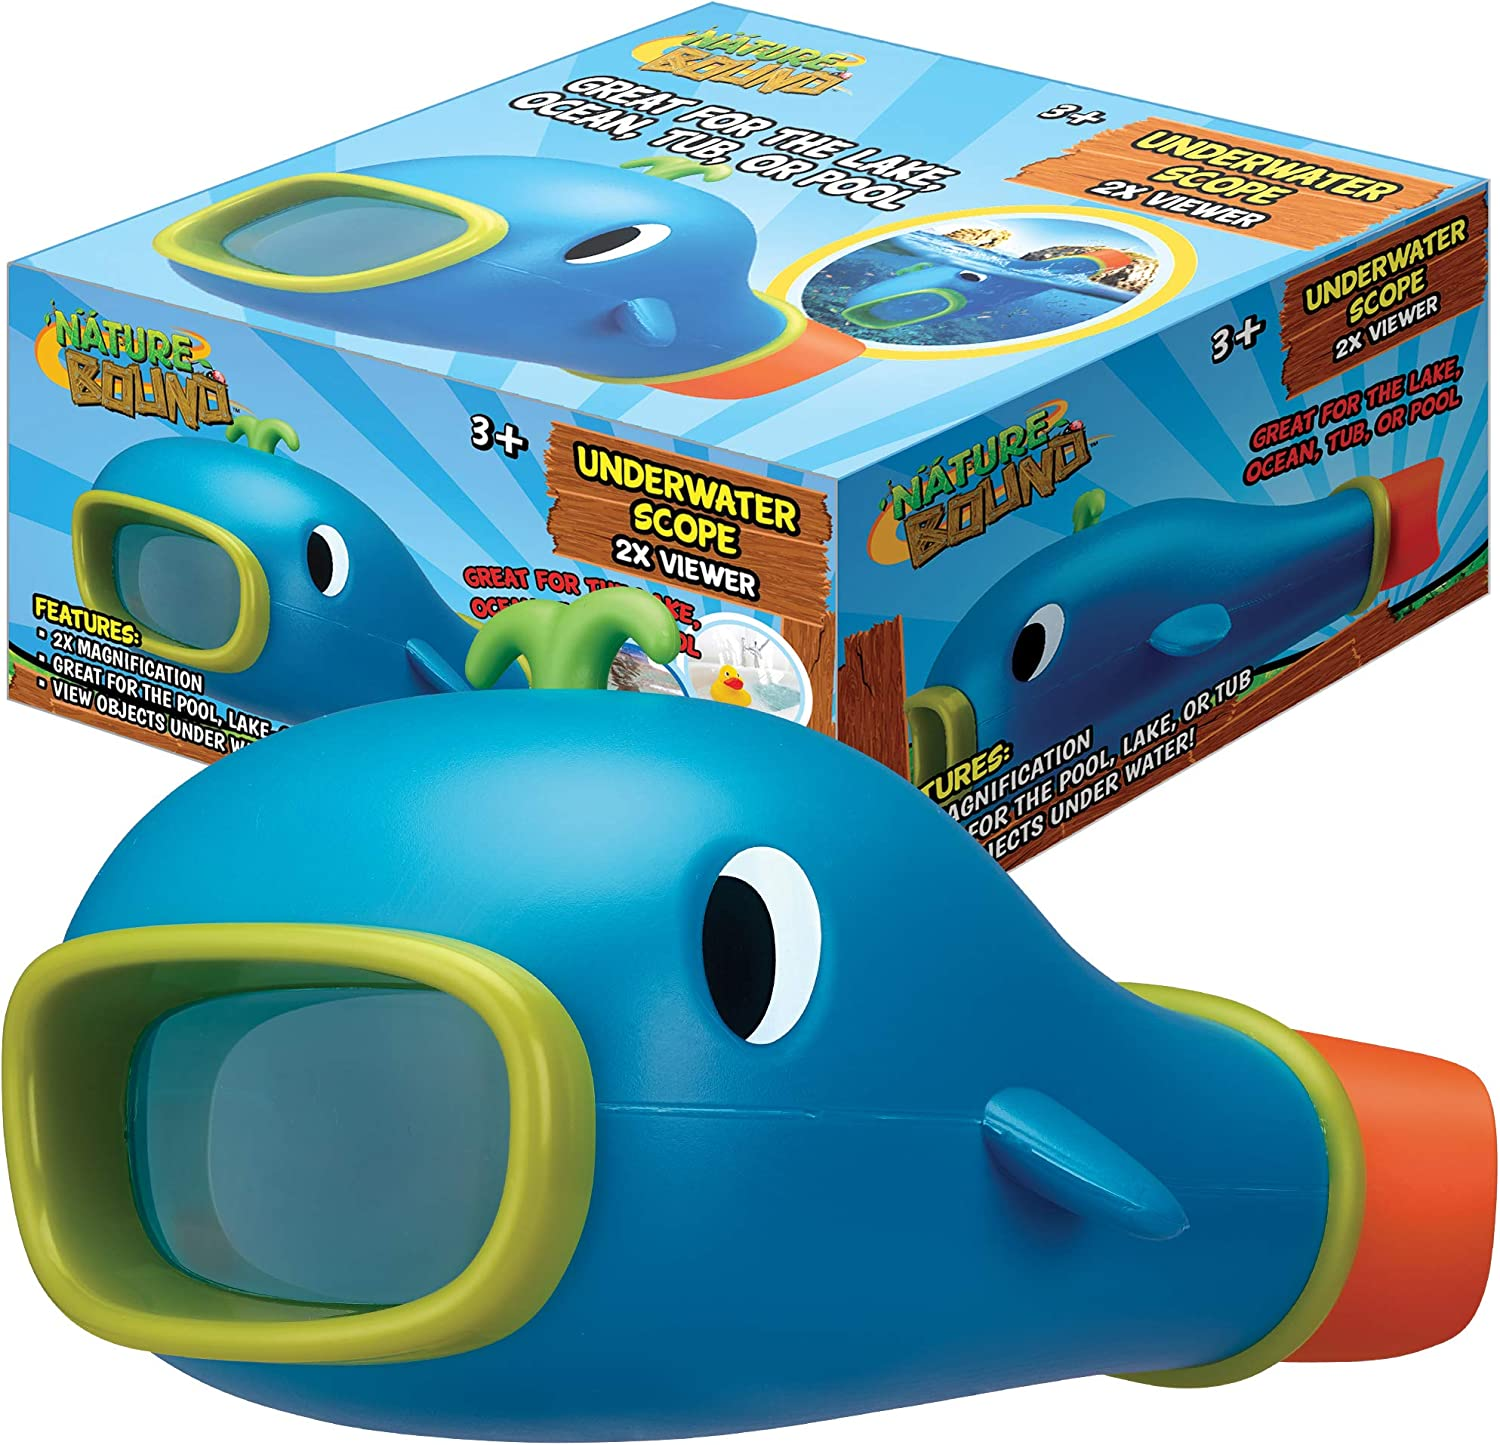 Nature Bound Underwater Scope Aqua Viewer Toy for Kids with 2X Marine Microscope for Boys and Girls Ages 3 +, Blue